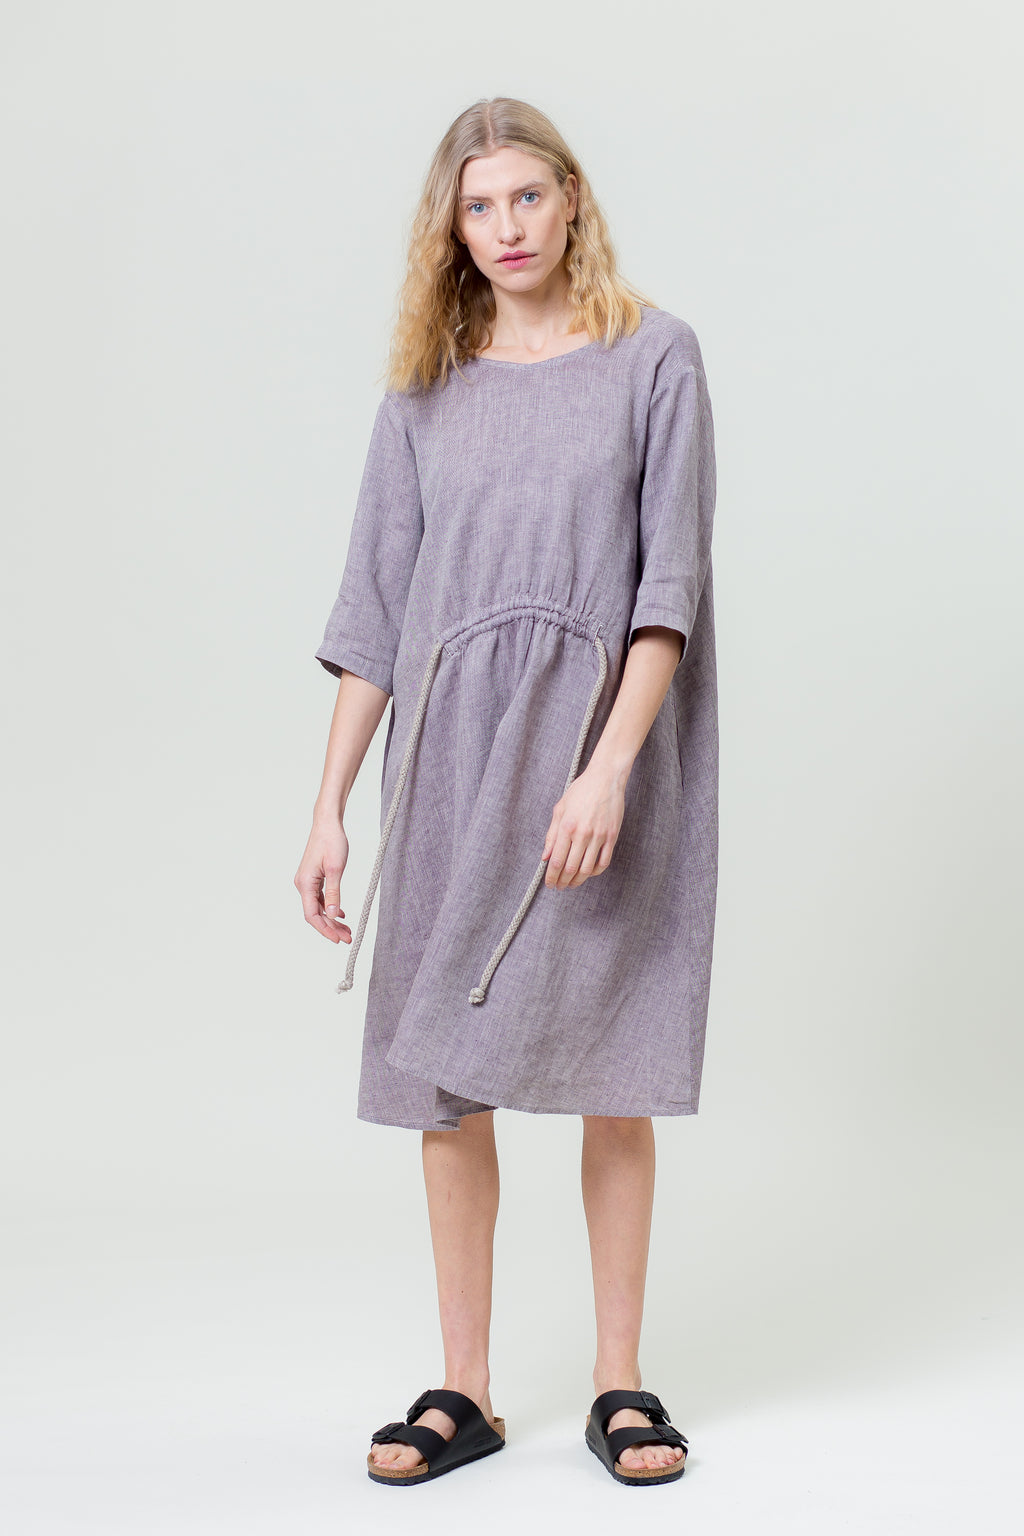 Linen Dress JURGA purple